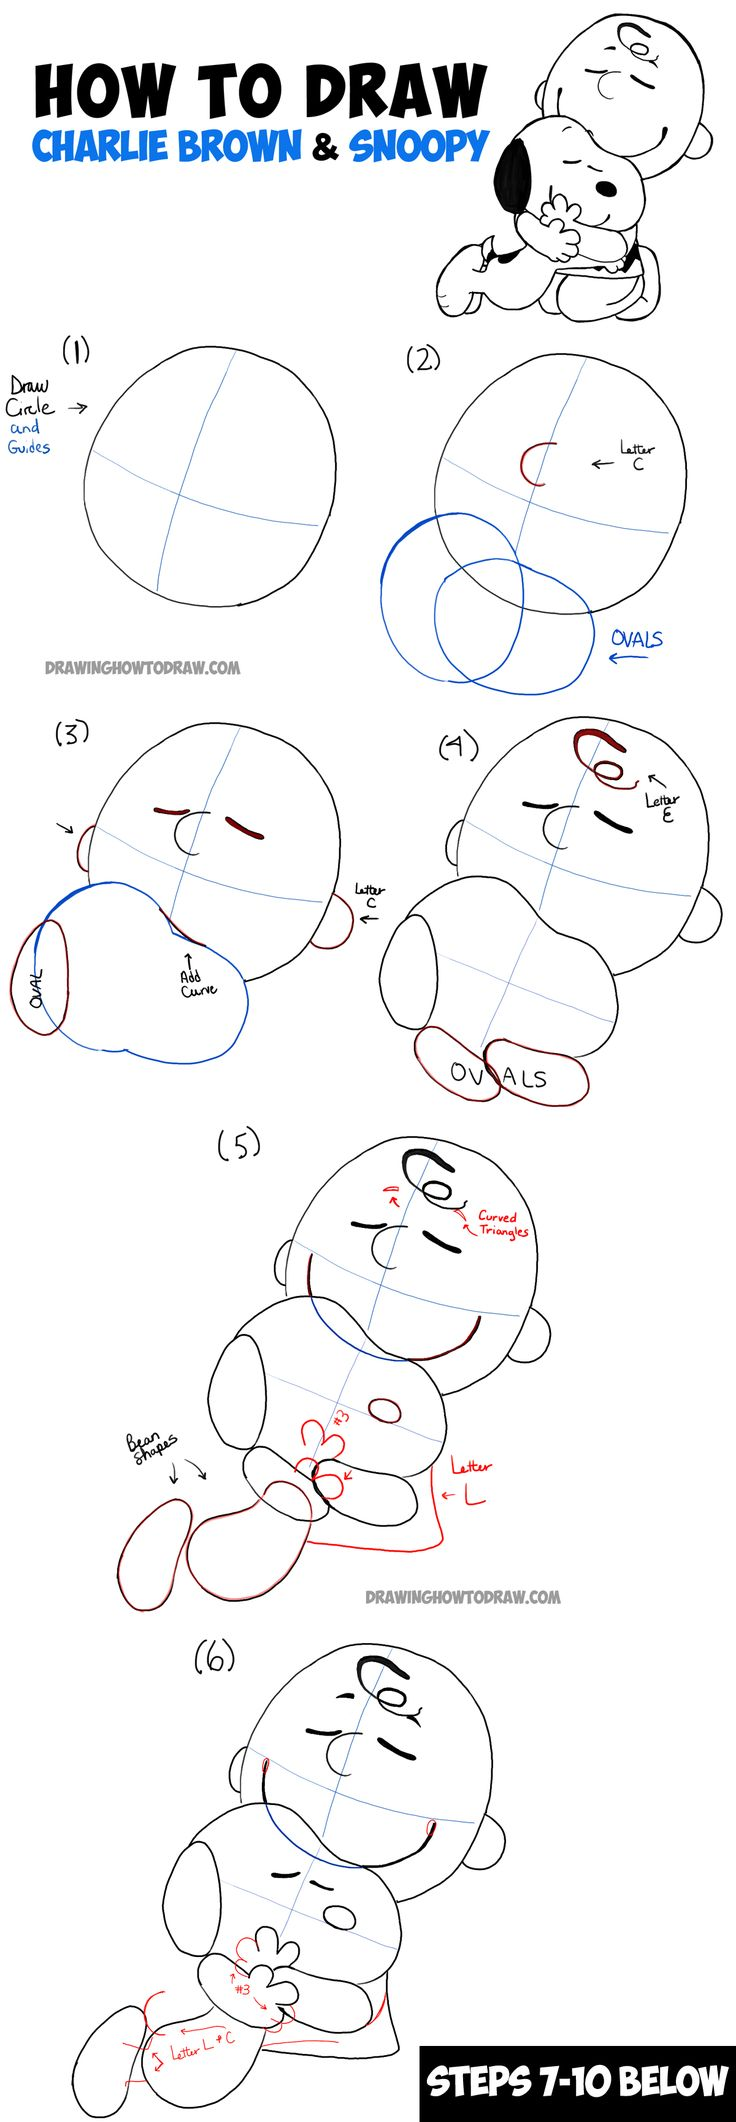 How to Draw Snoopy and Charlie Brown from The Peanuts Movie Step by Step Drawing Tutorial